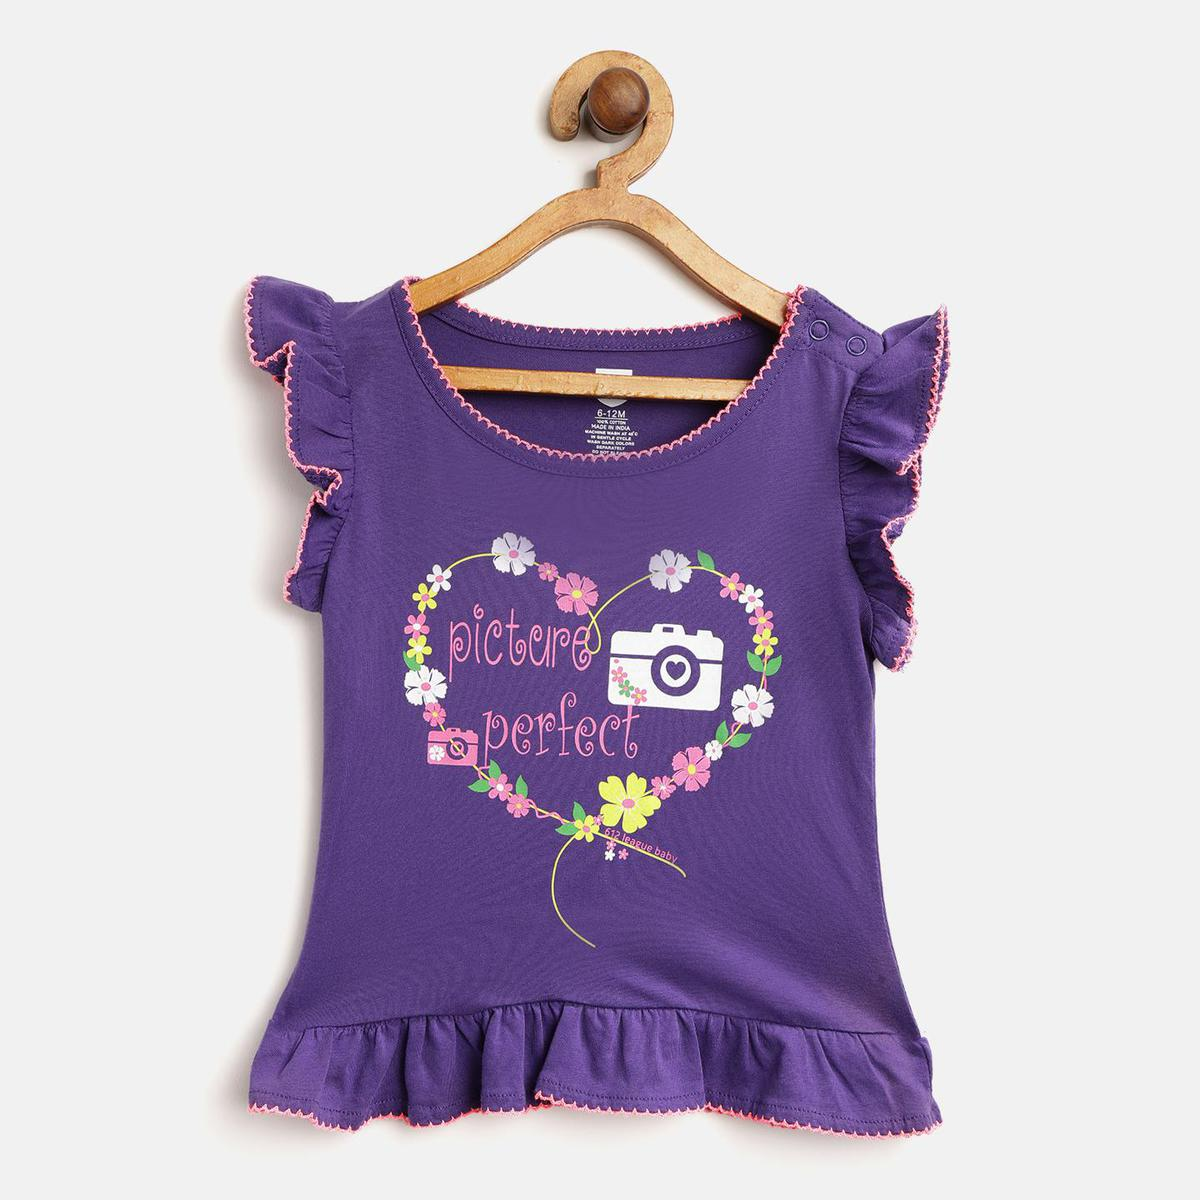 612 League - Purple Colored Picture Perfect T-shirts For Baby Girls